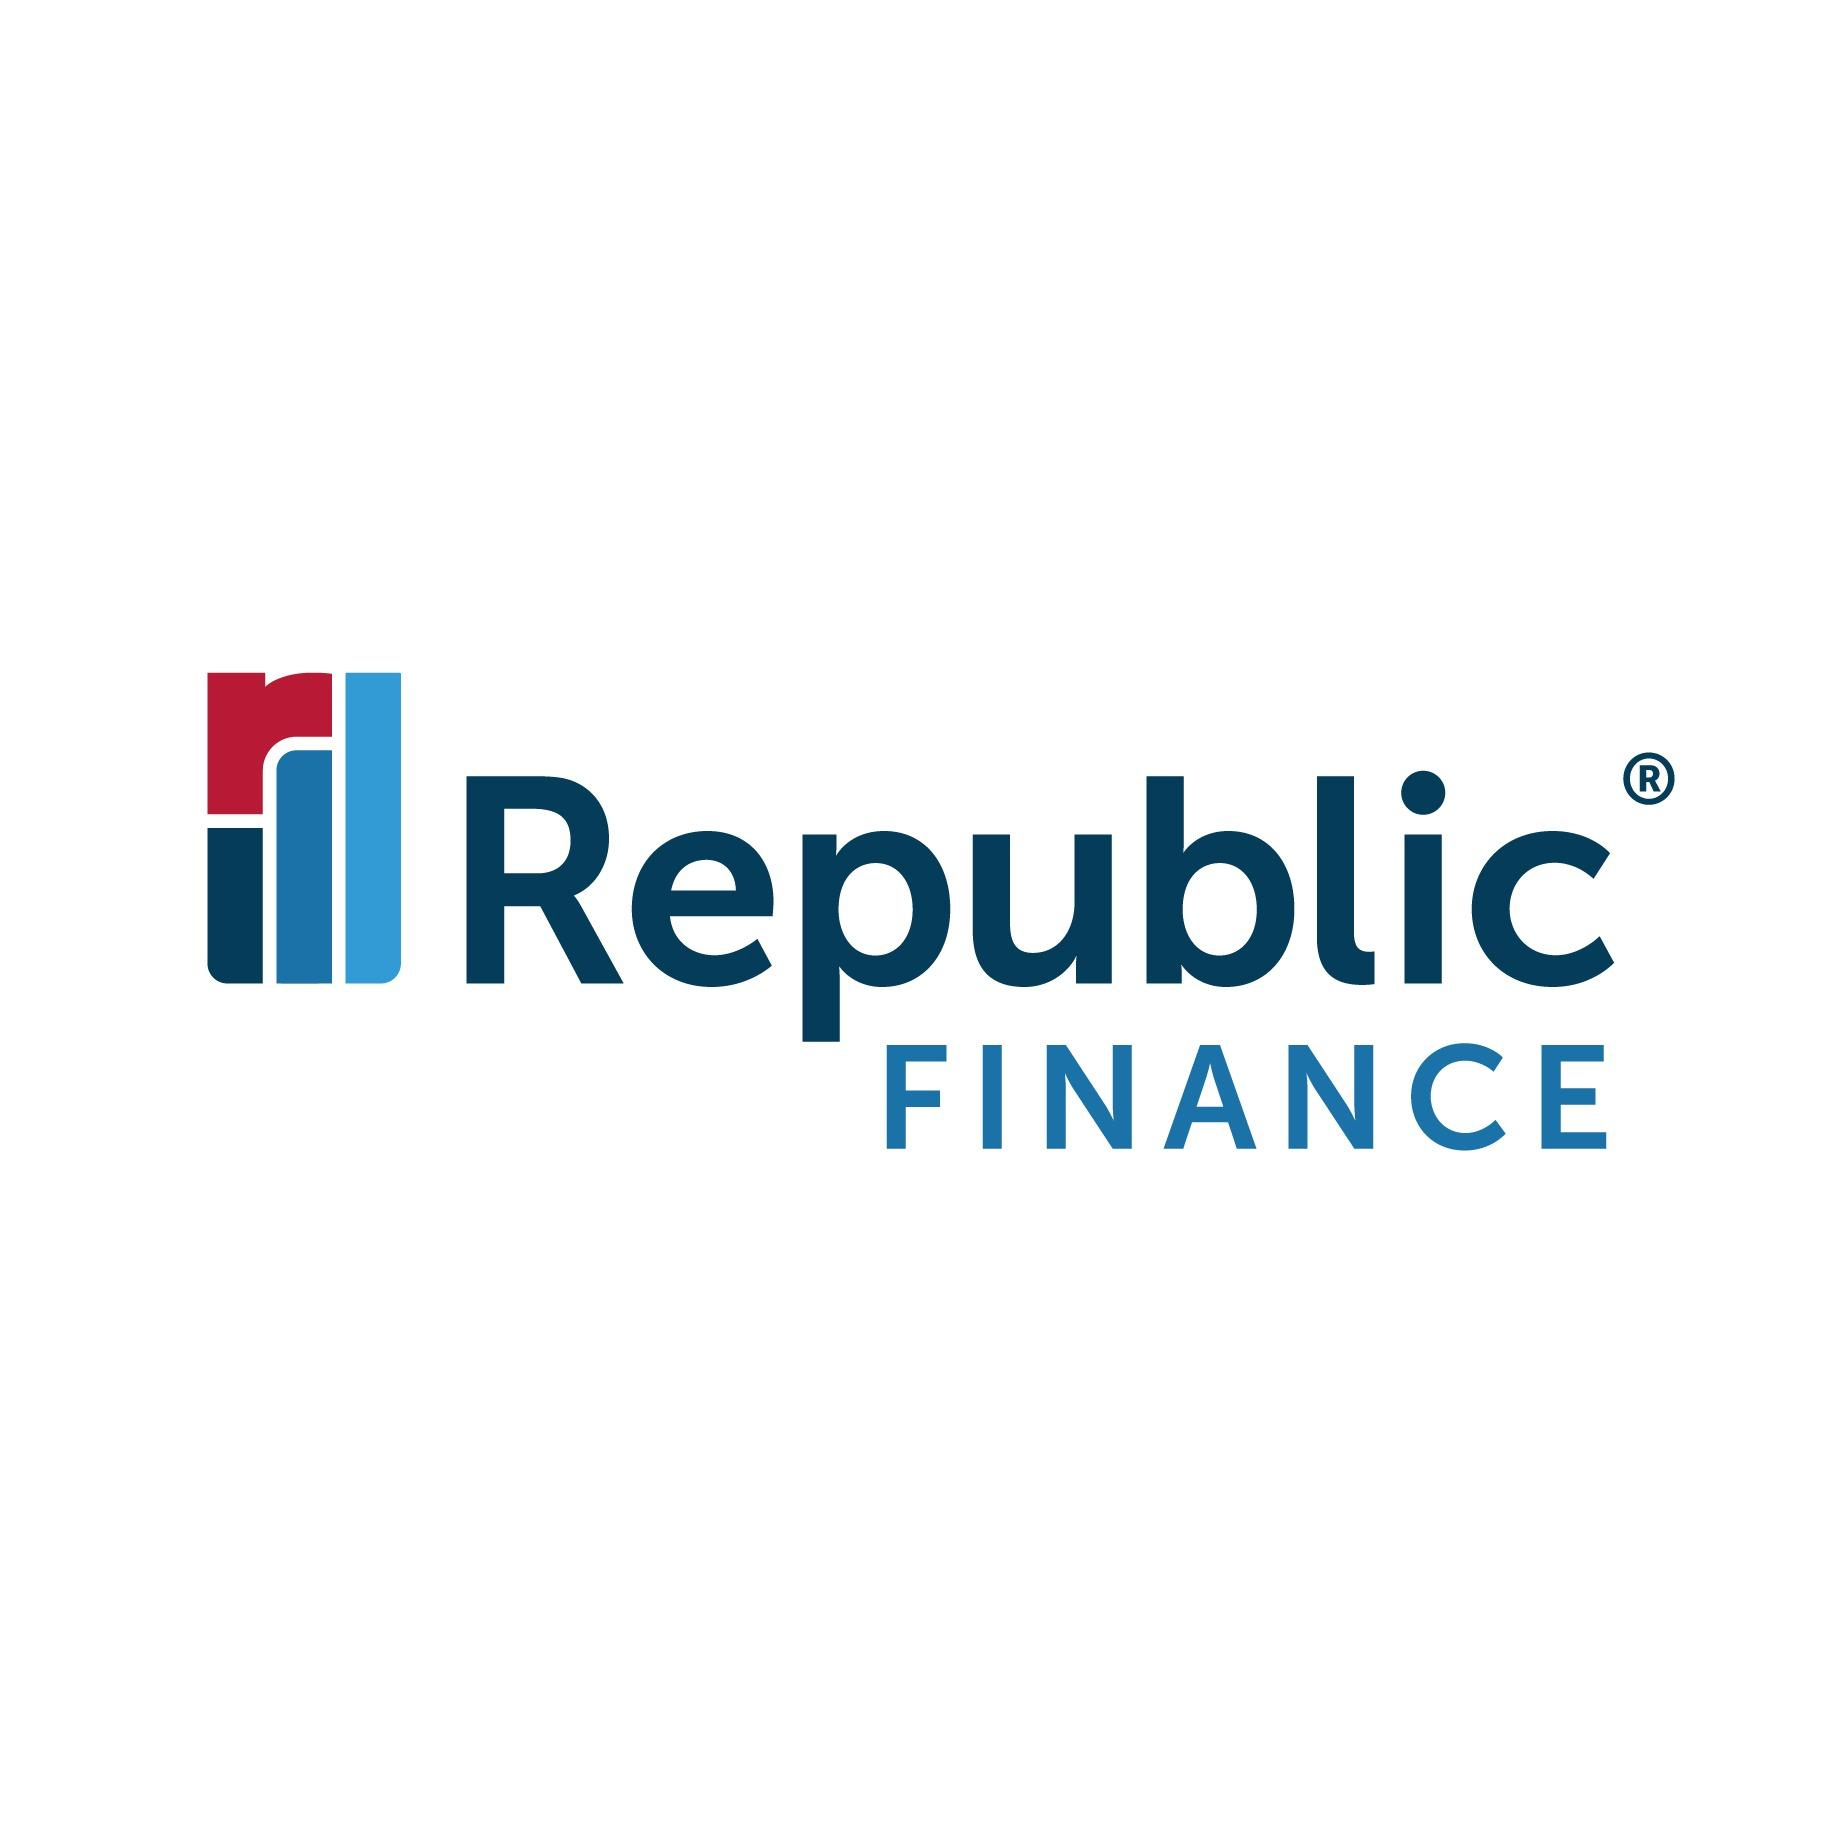 Republic Finance - St. Louis, MO 63130 - (314)798-0180 | ShowMeLocal.com